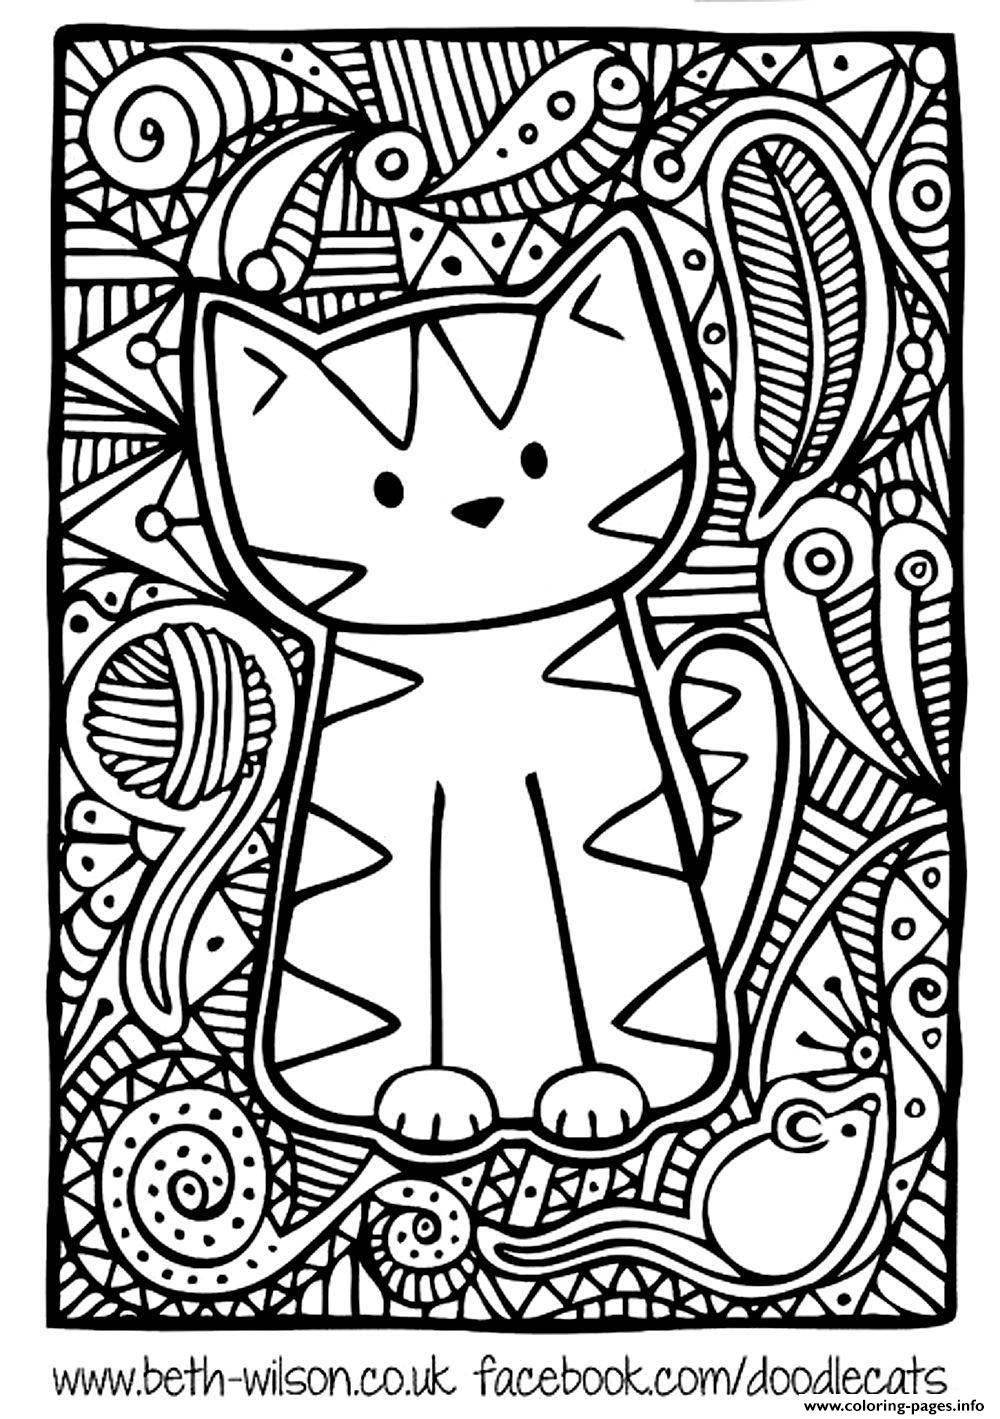 hard cute cat coloring pages adult difficult cute cat coloring pages printable cute hard cat pages coloring